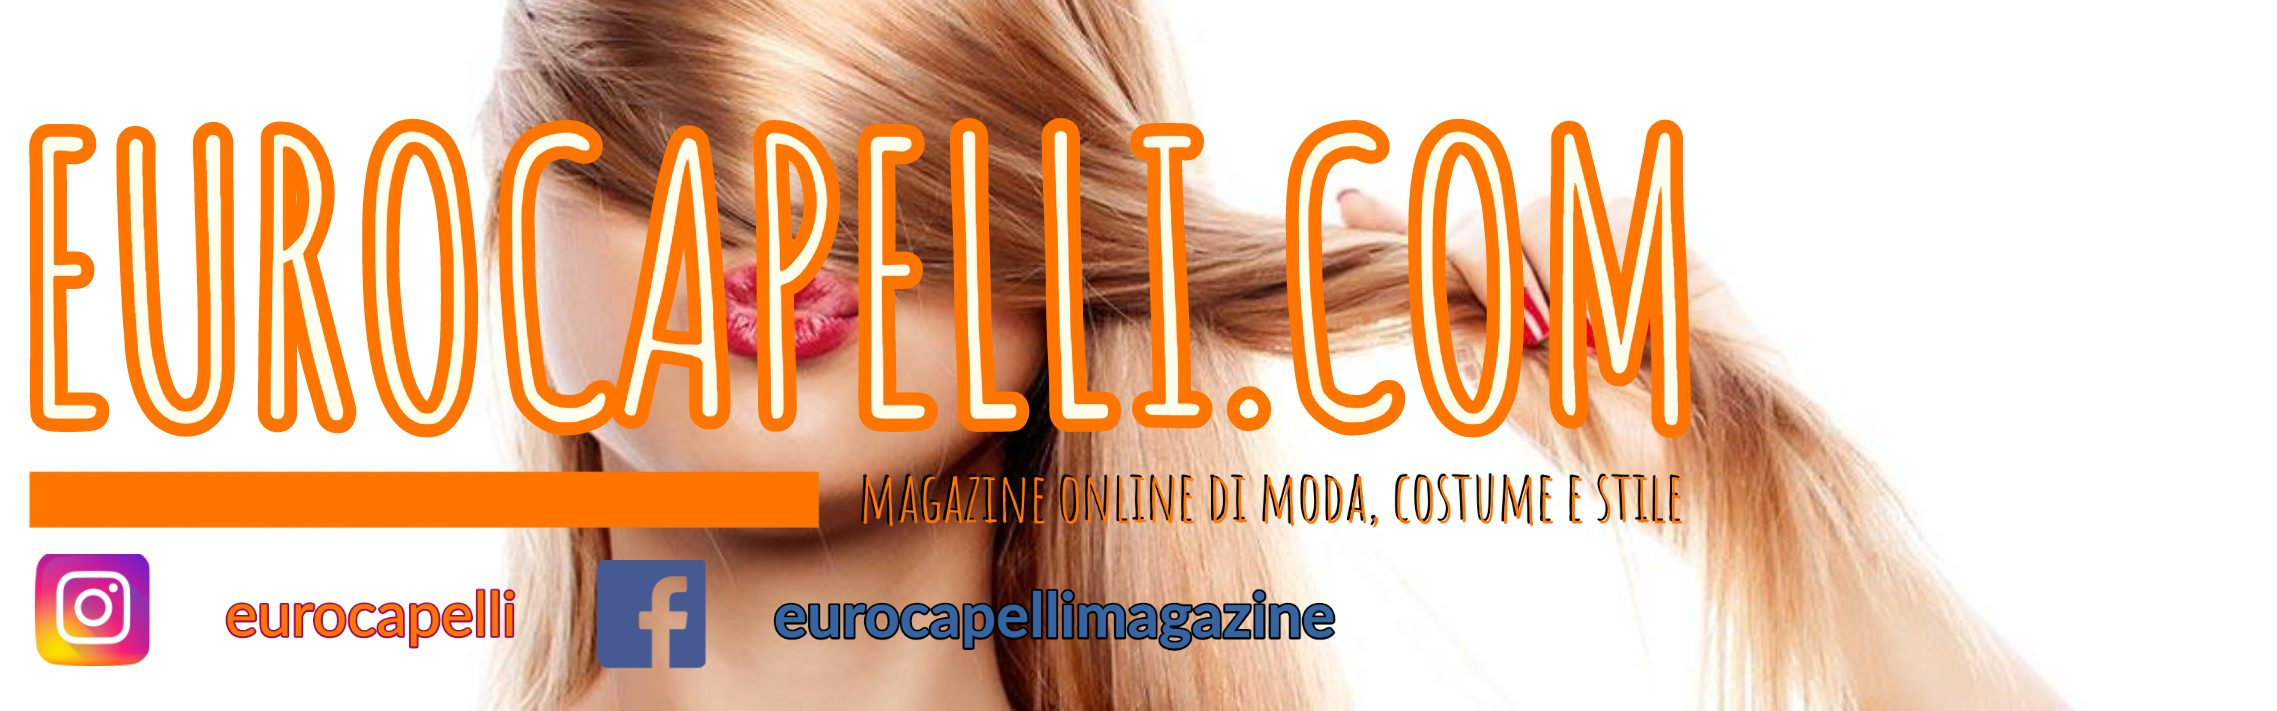 Eurocapelli.com